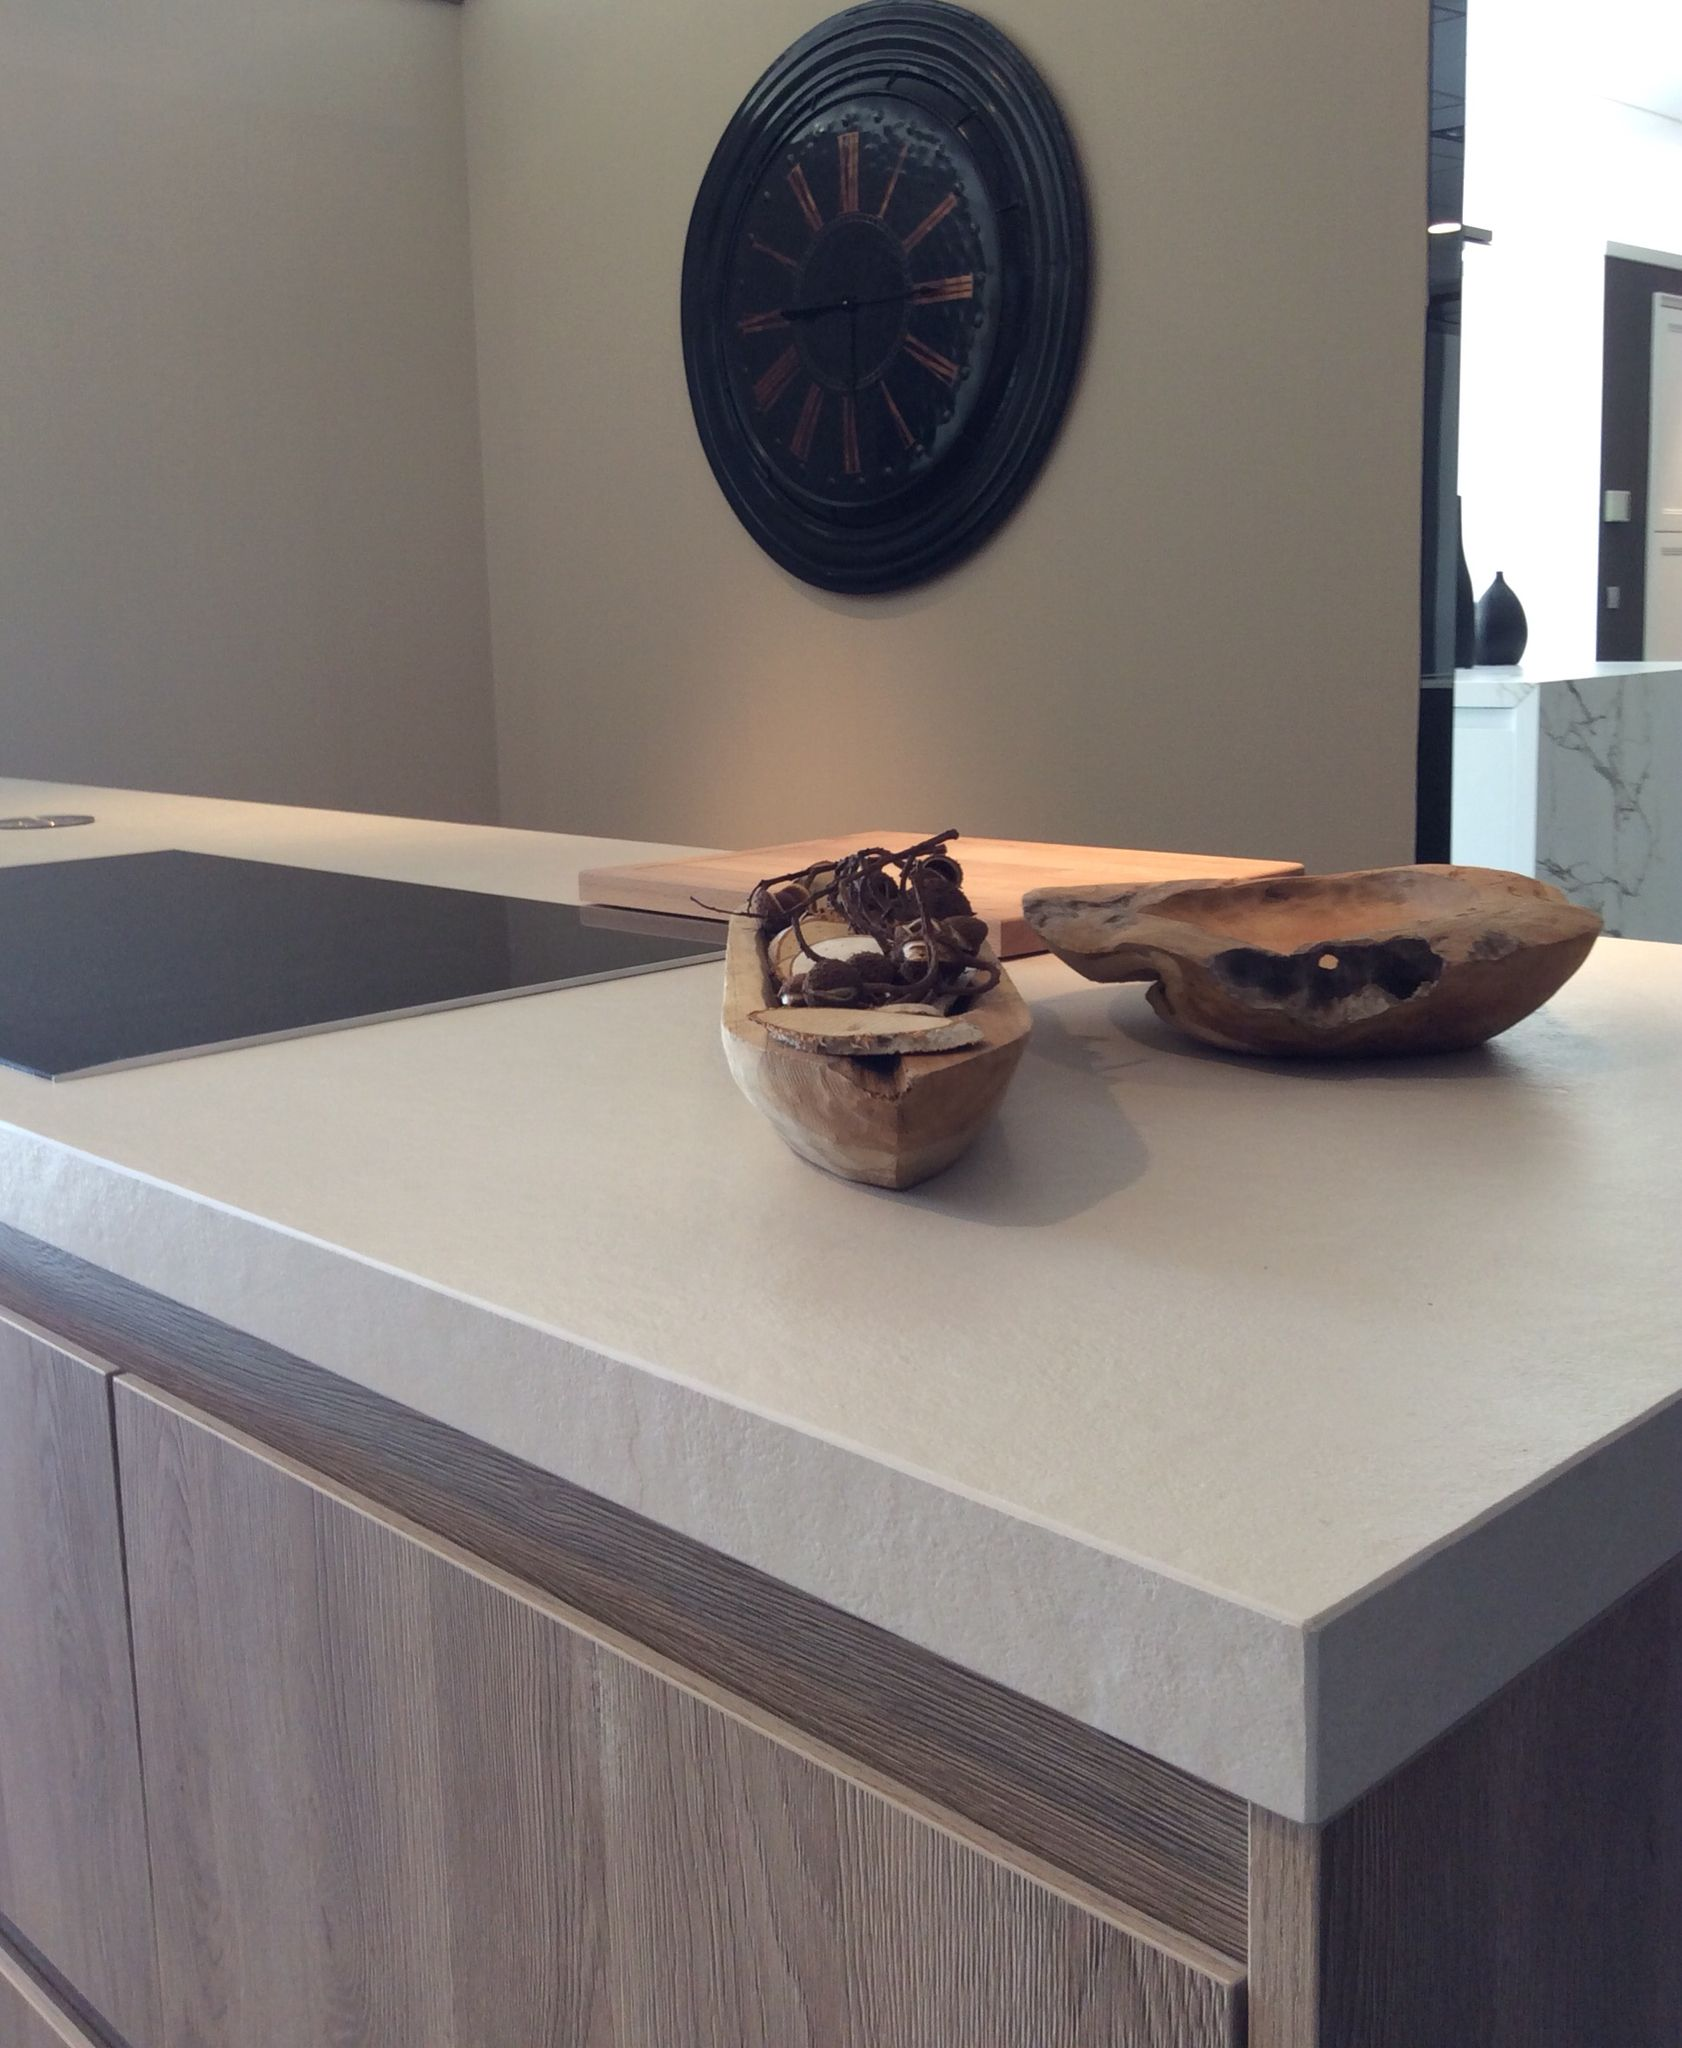 Dekton Edora kitchentop @Kitchensuite Genk by Lauwers Natuursteen